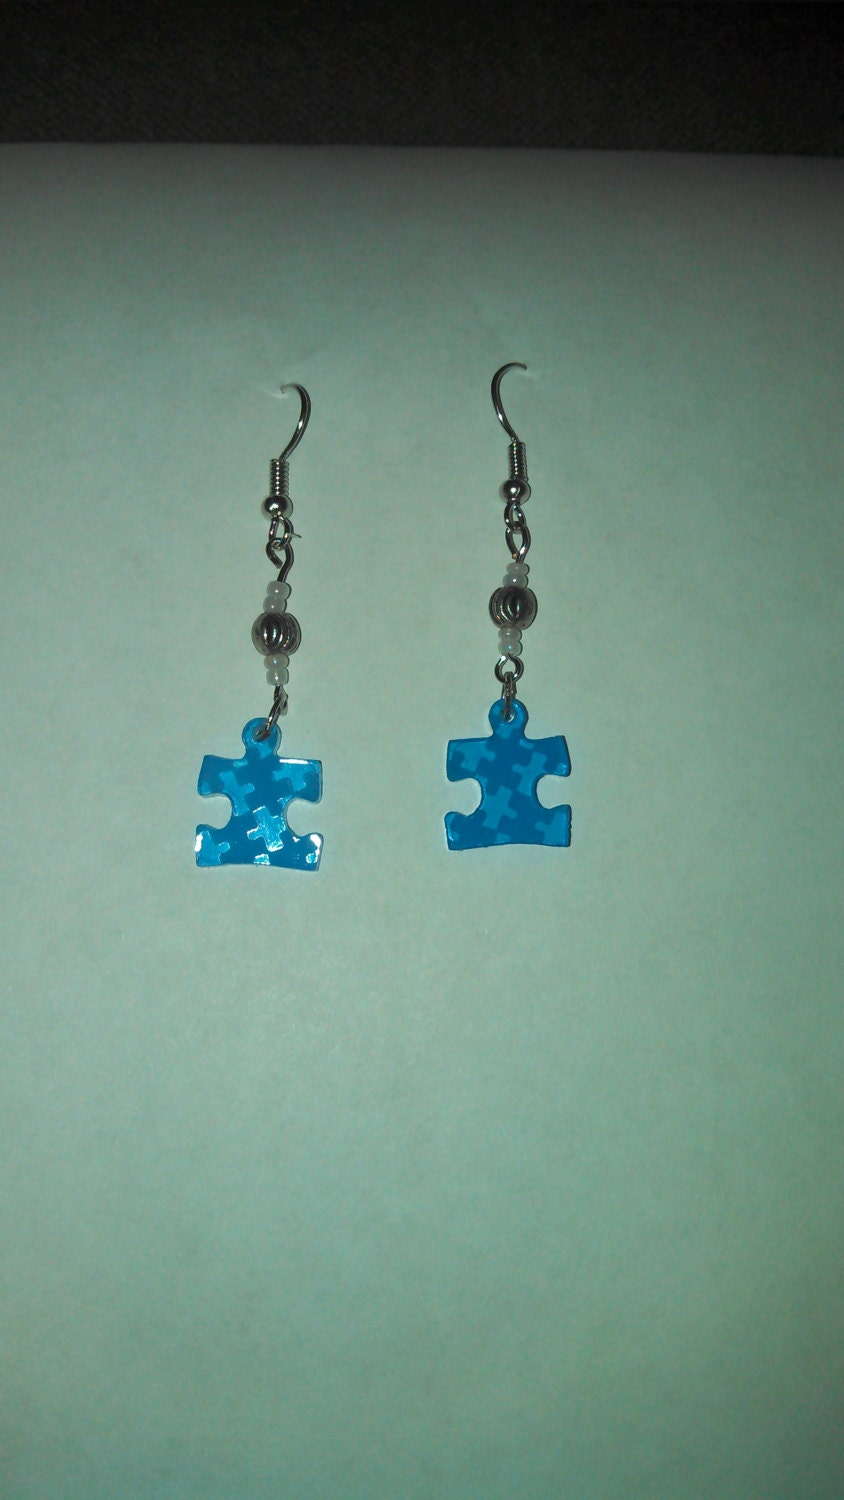 autism puzzle earrings by piasaproductions on etsy